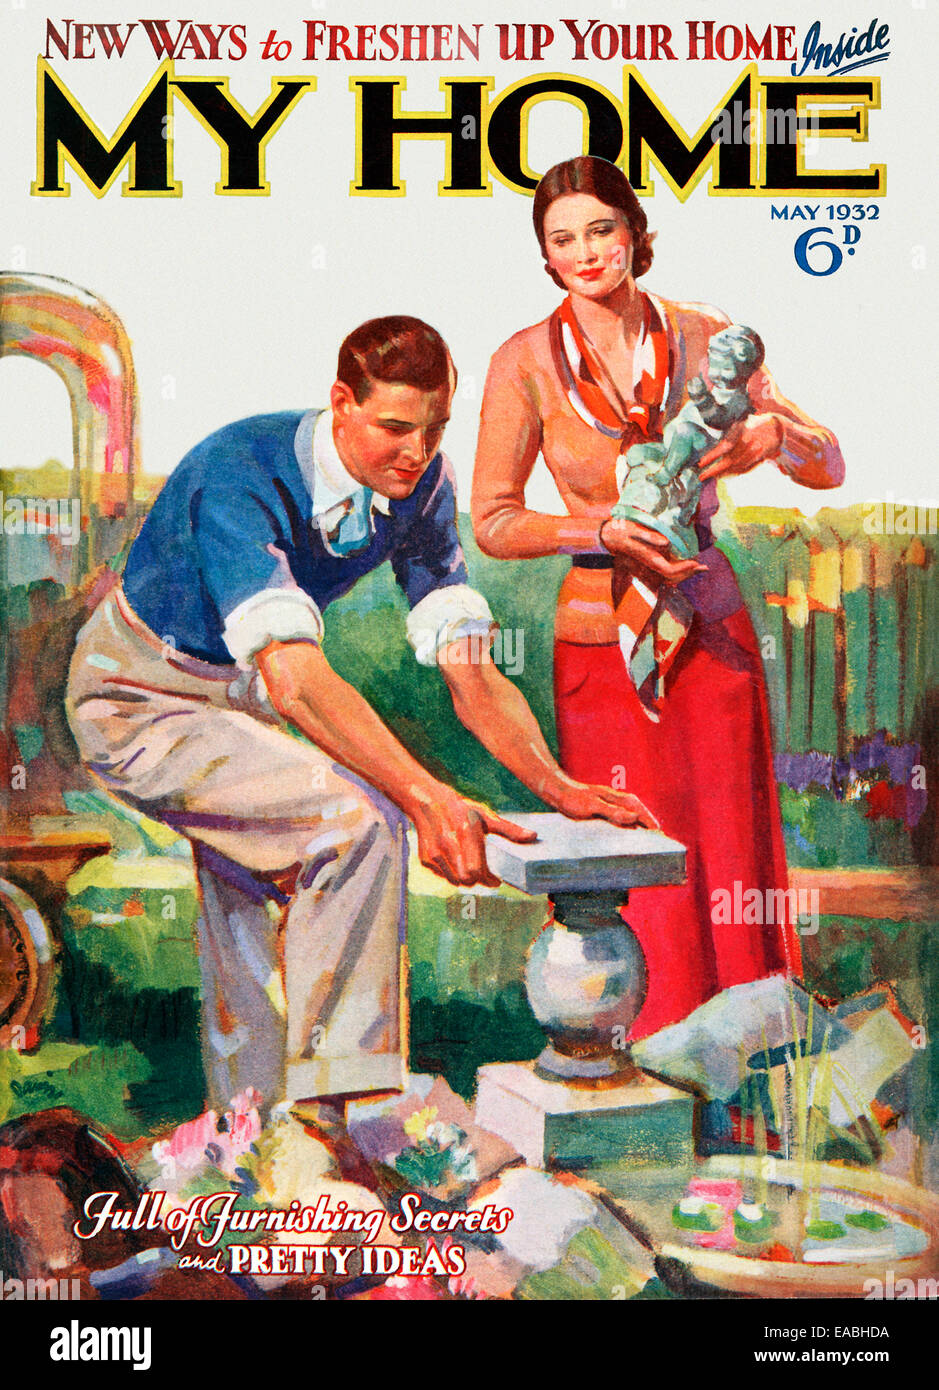 My Home, Statue, 1932 cover of the English home and lifestyle magazine for the new suburban middle class, a couple - Stock Image